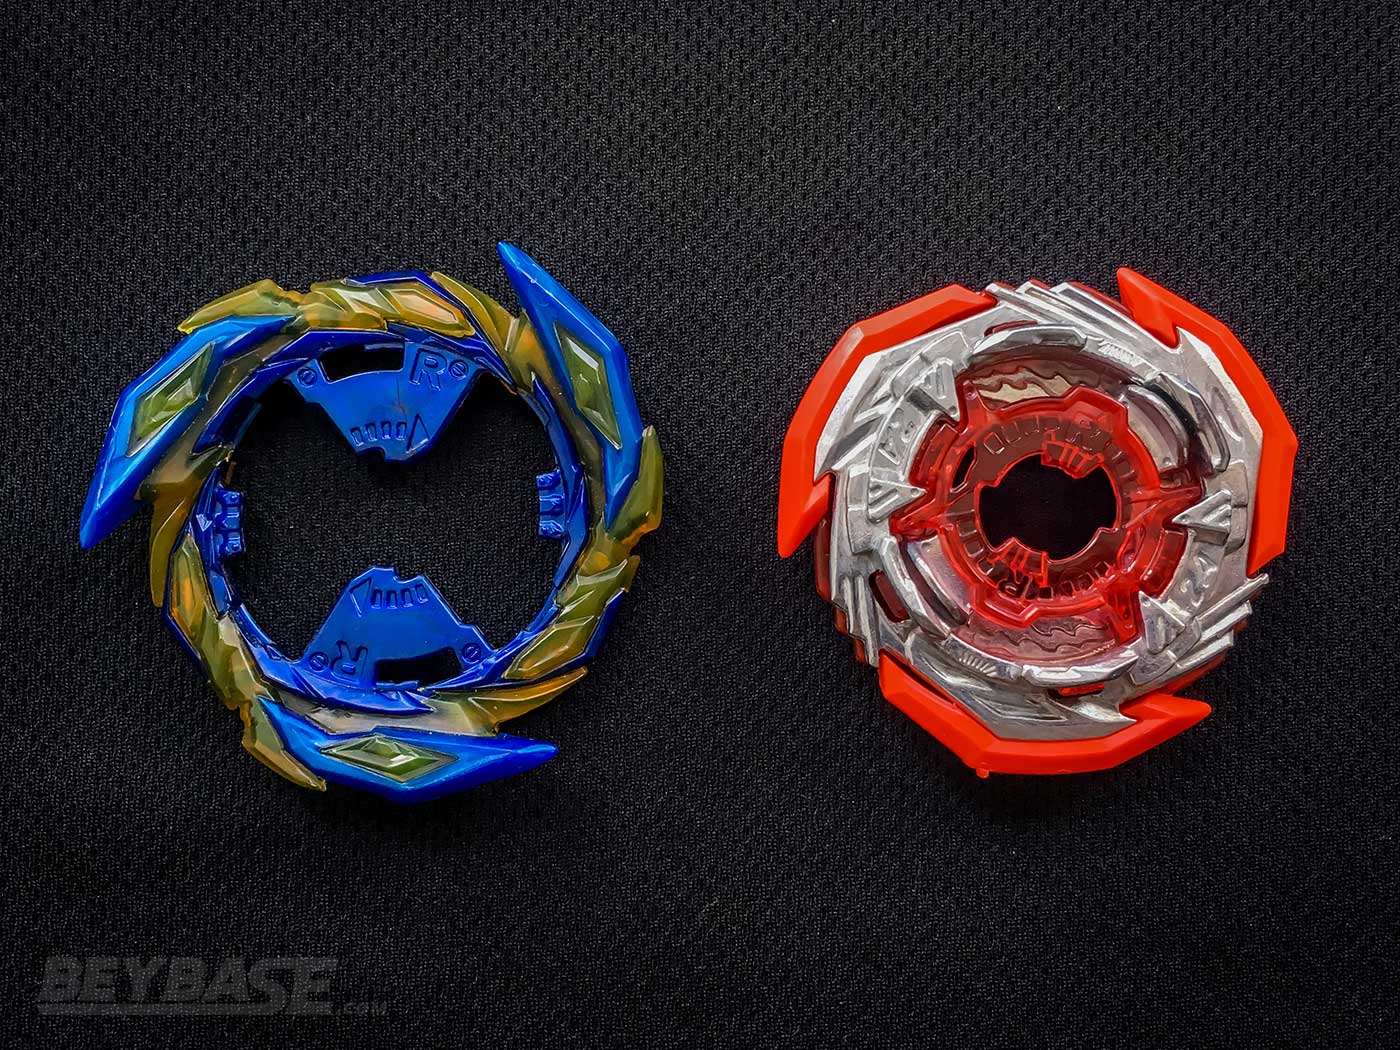 brave ring and 2a double chassis beyblade parts